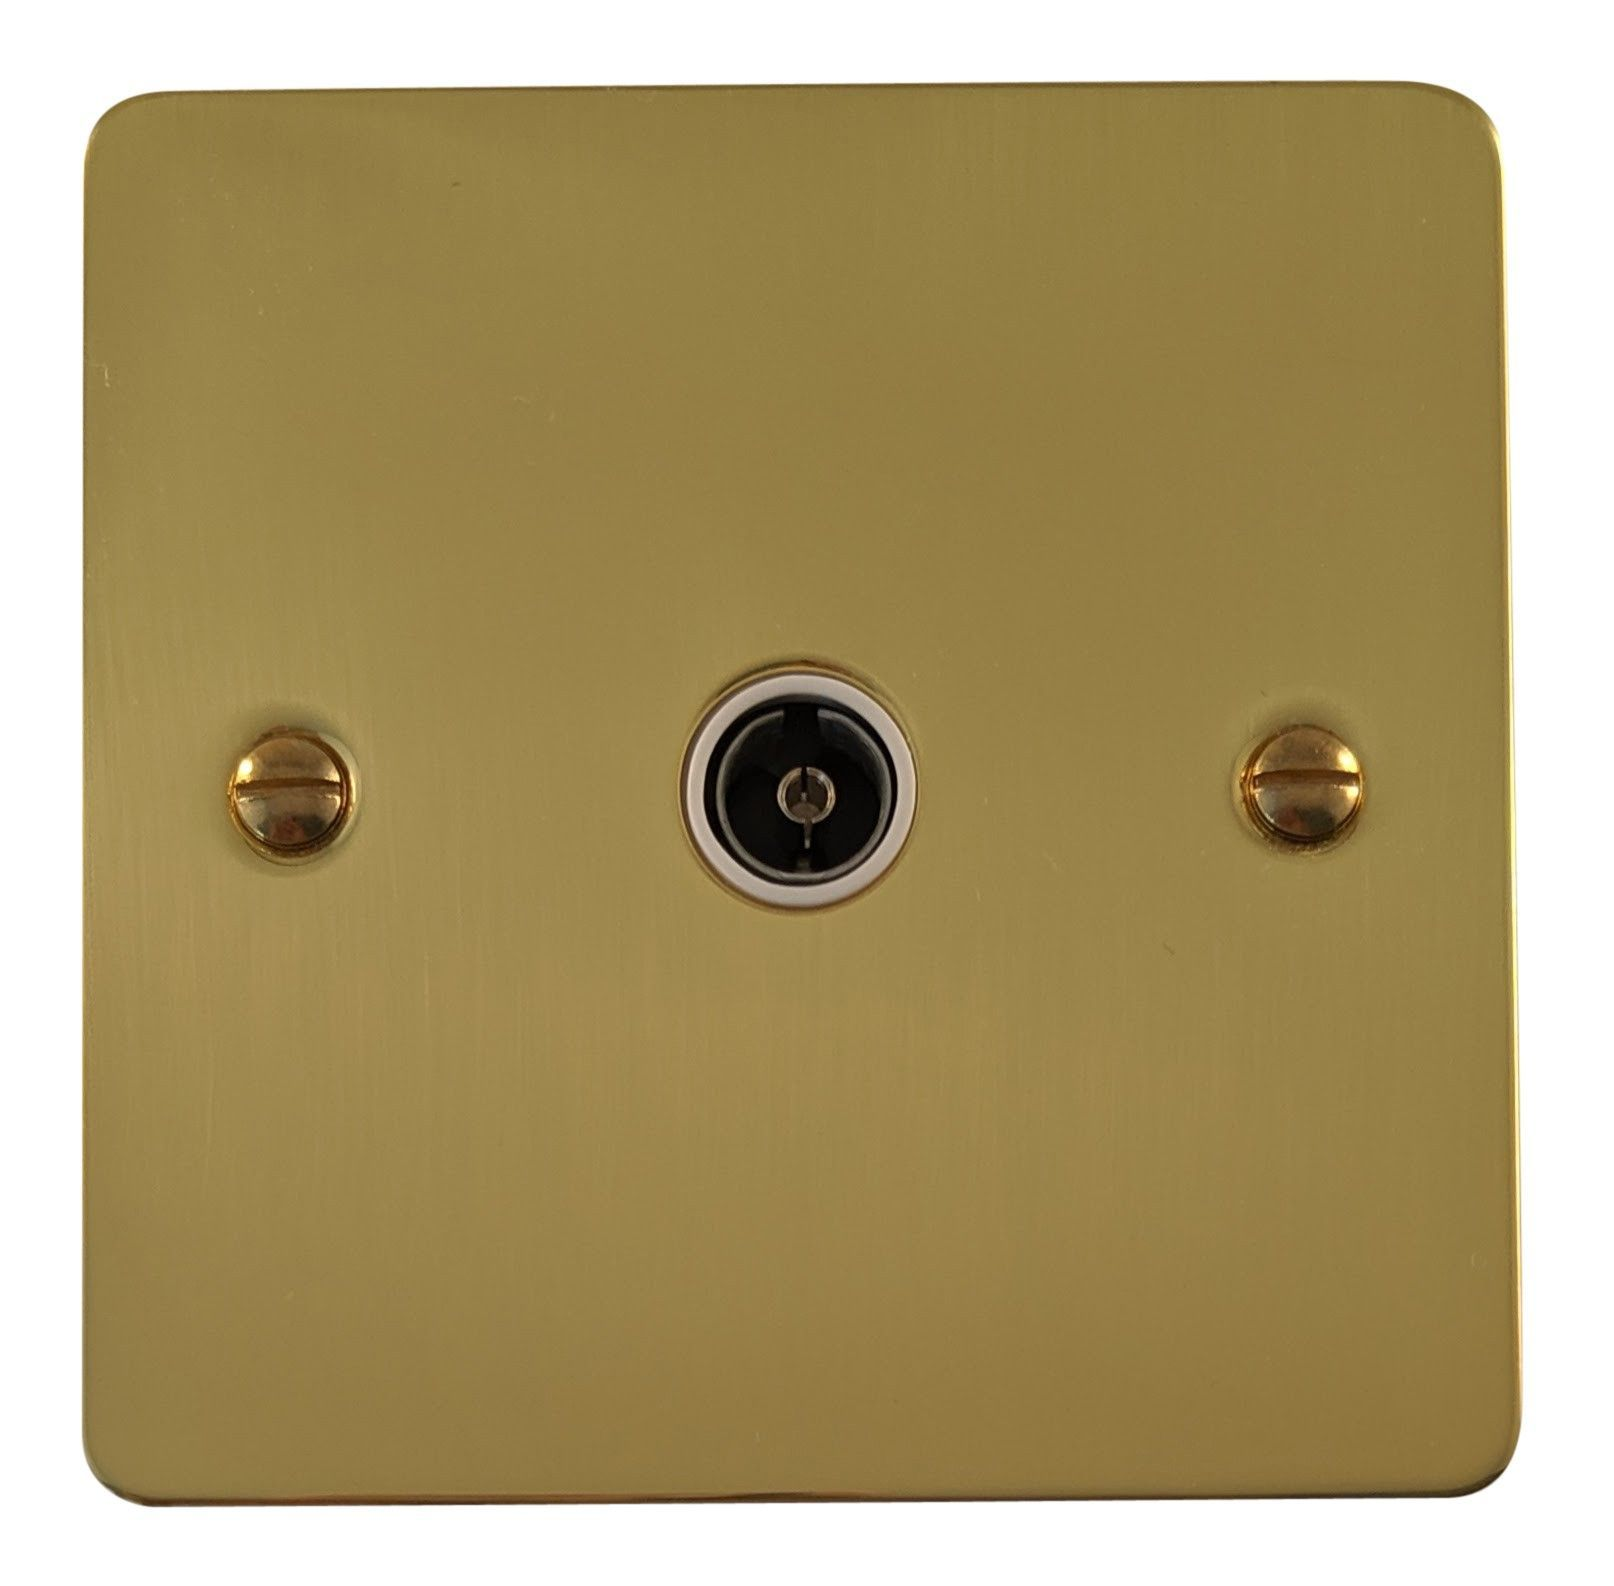 G&H FB35W Flat Plate Polished Brass 1 Gang TV Coax Socket Point